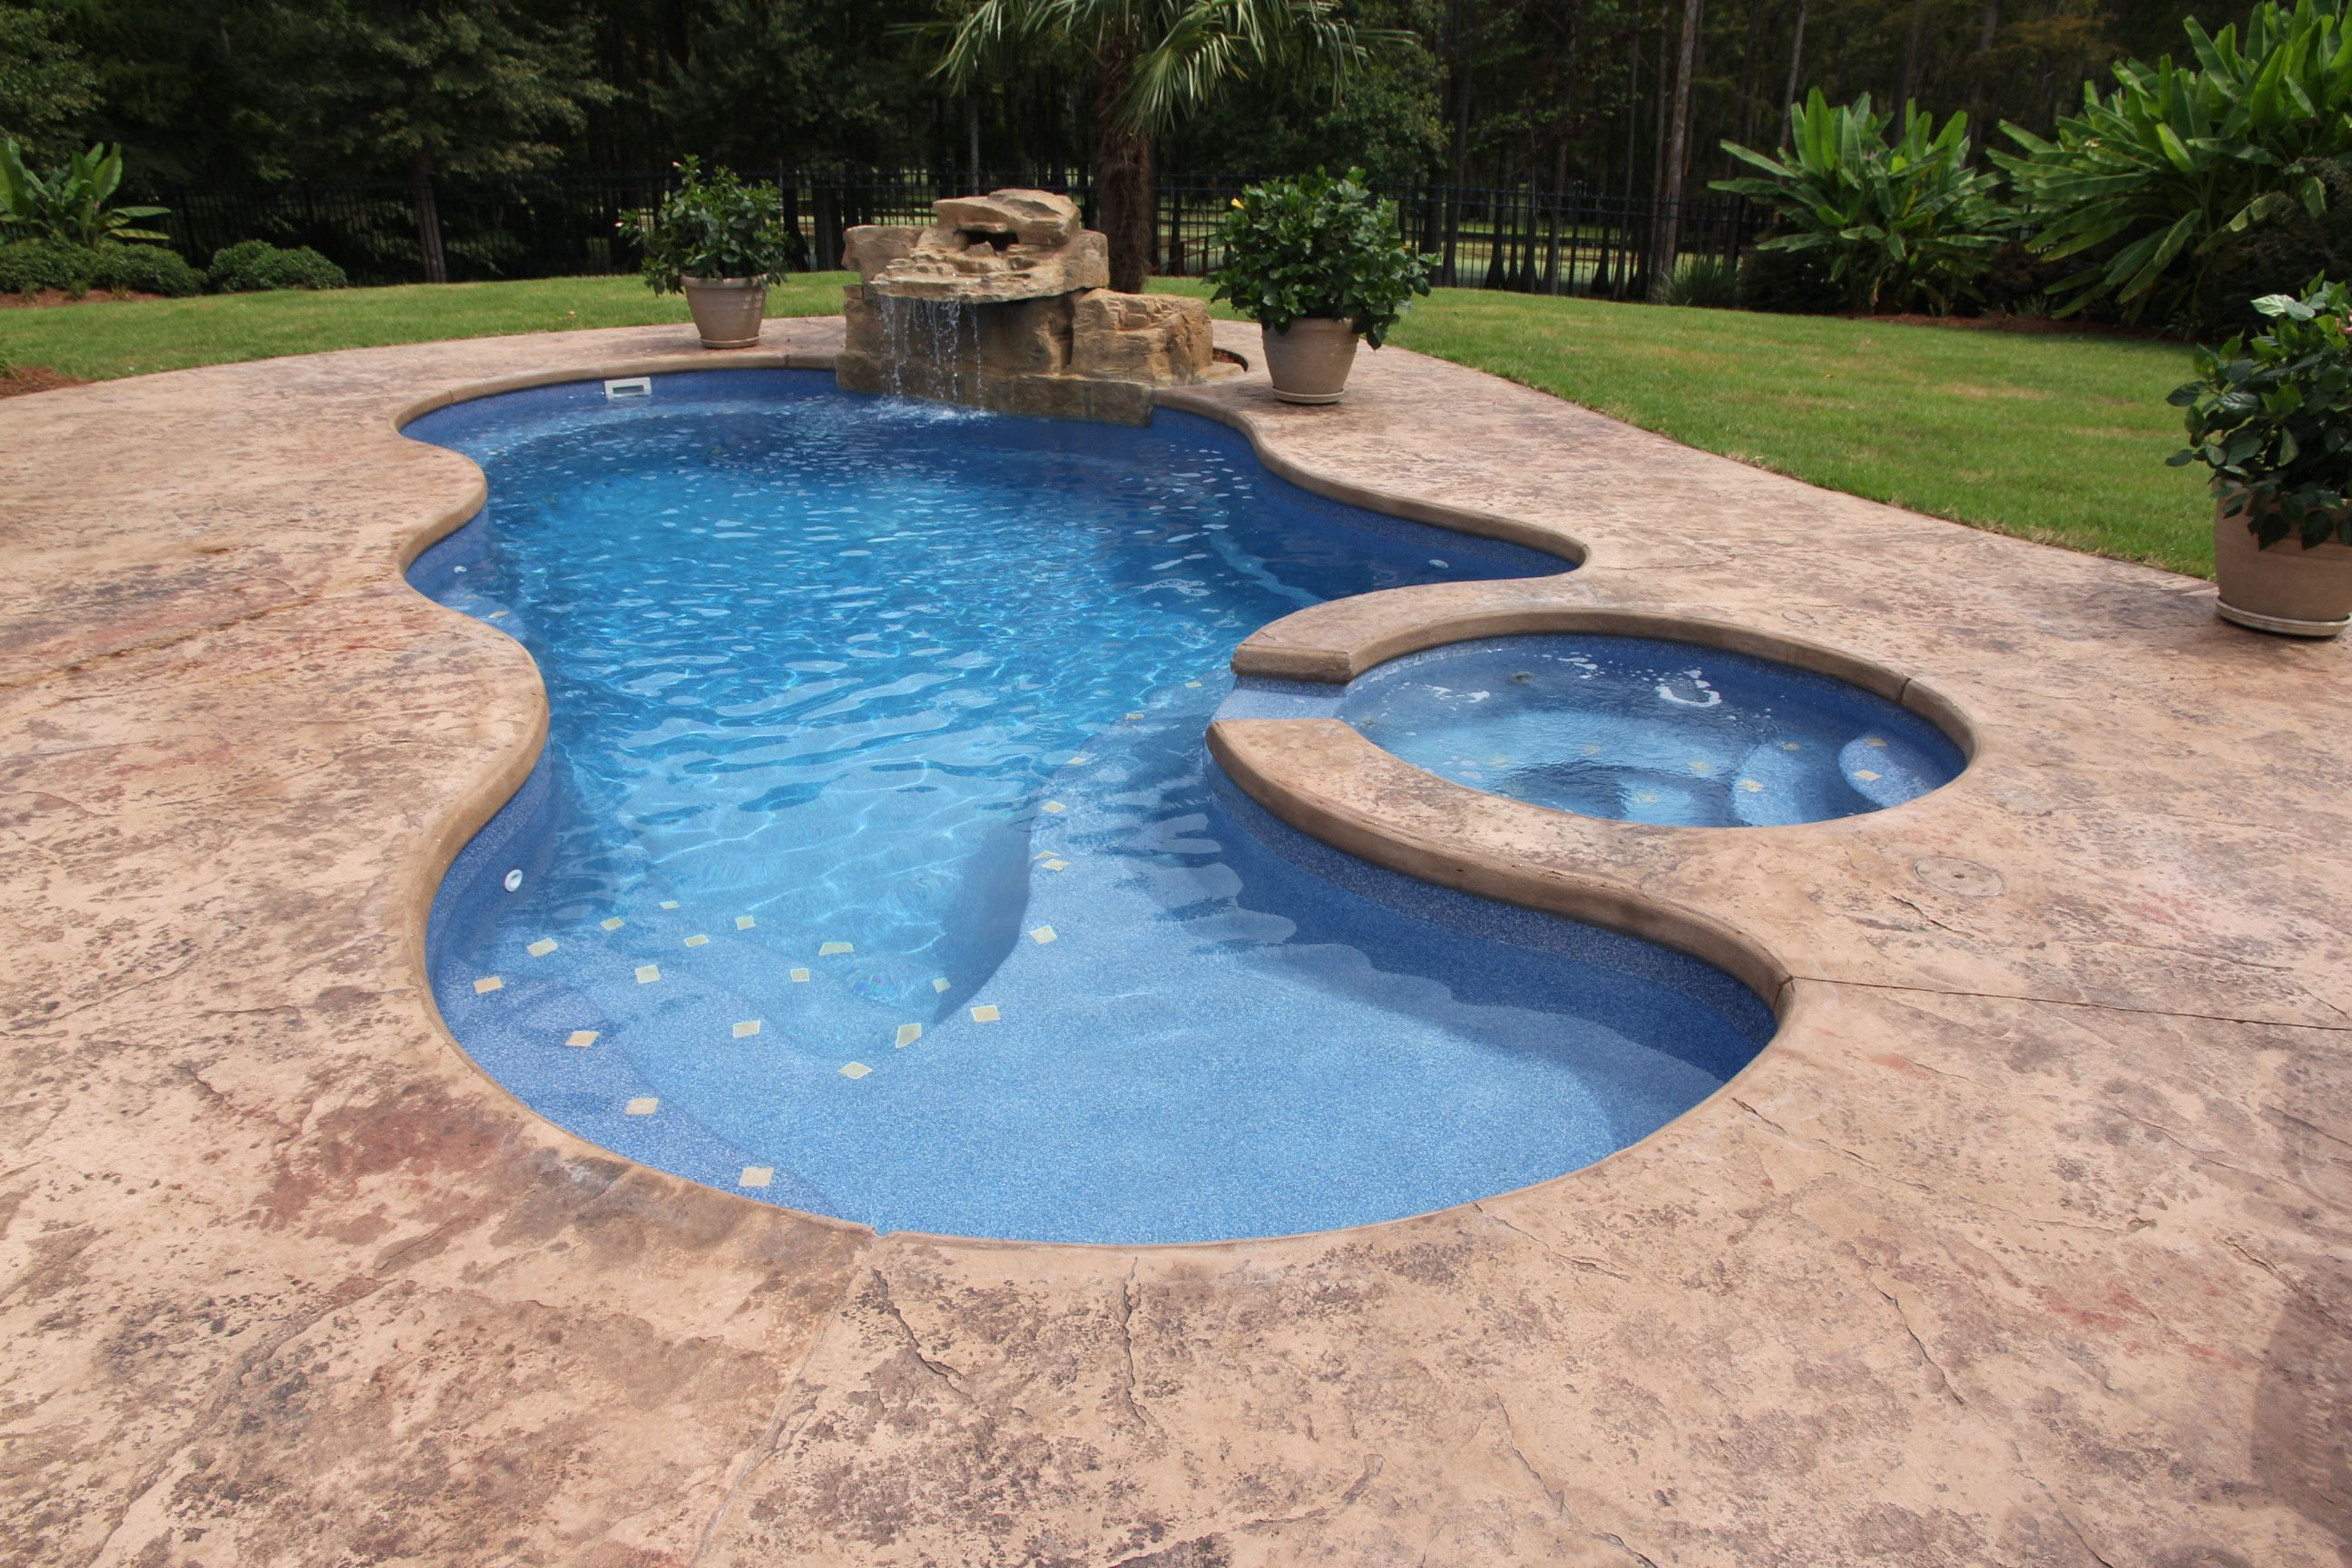 Small Fiberglass Pools Cheap Maui Small Inground Fiberglass Viking Pool With Small Fiberglass